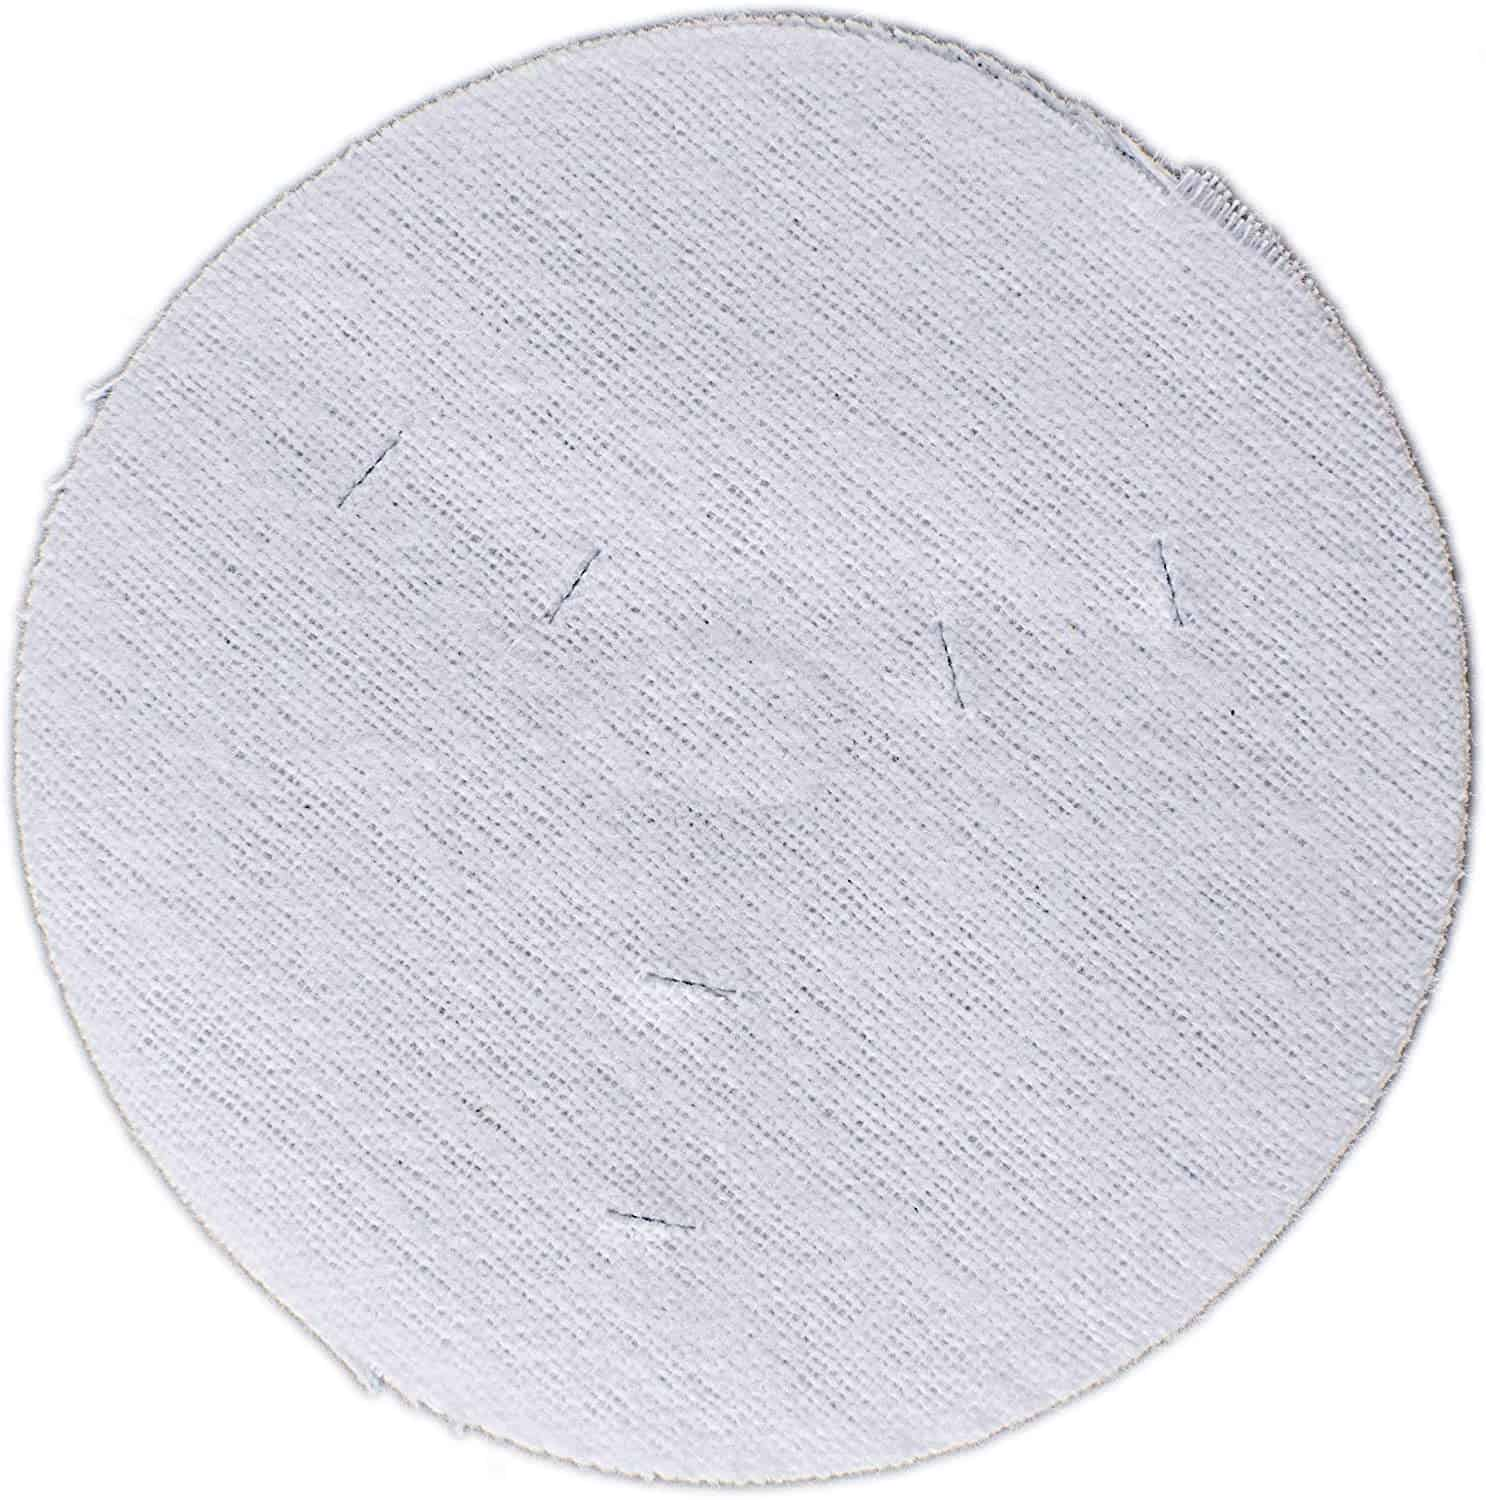 Otis Technology All-Caliber Cleaning Patches